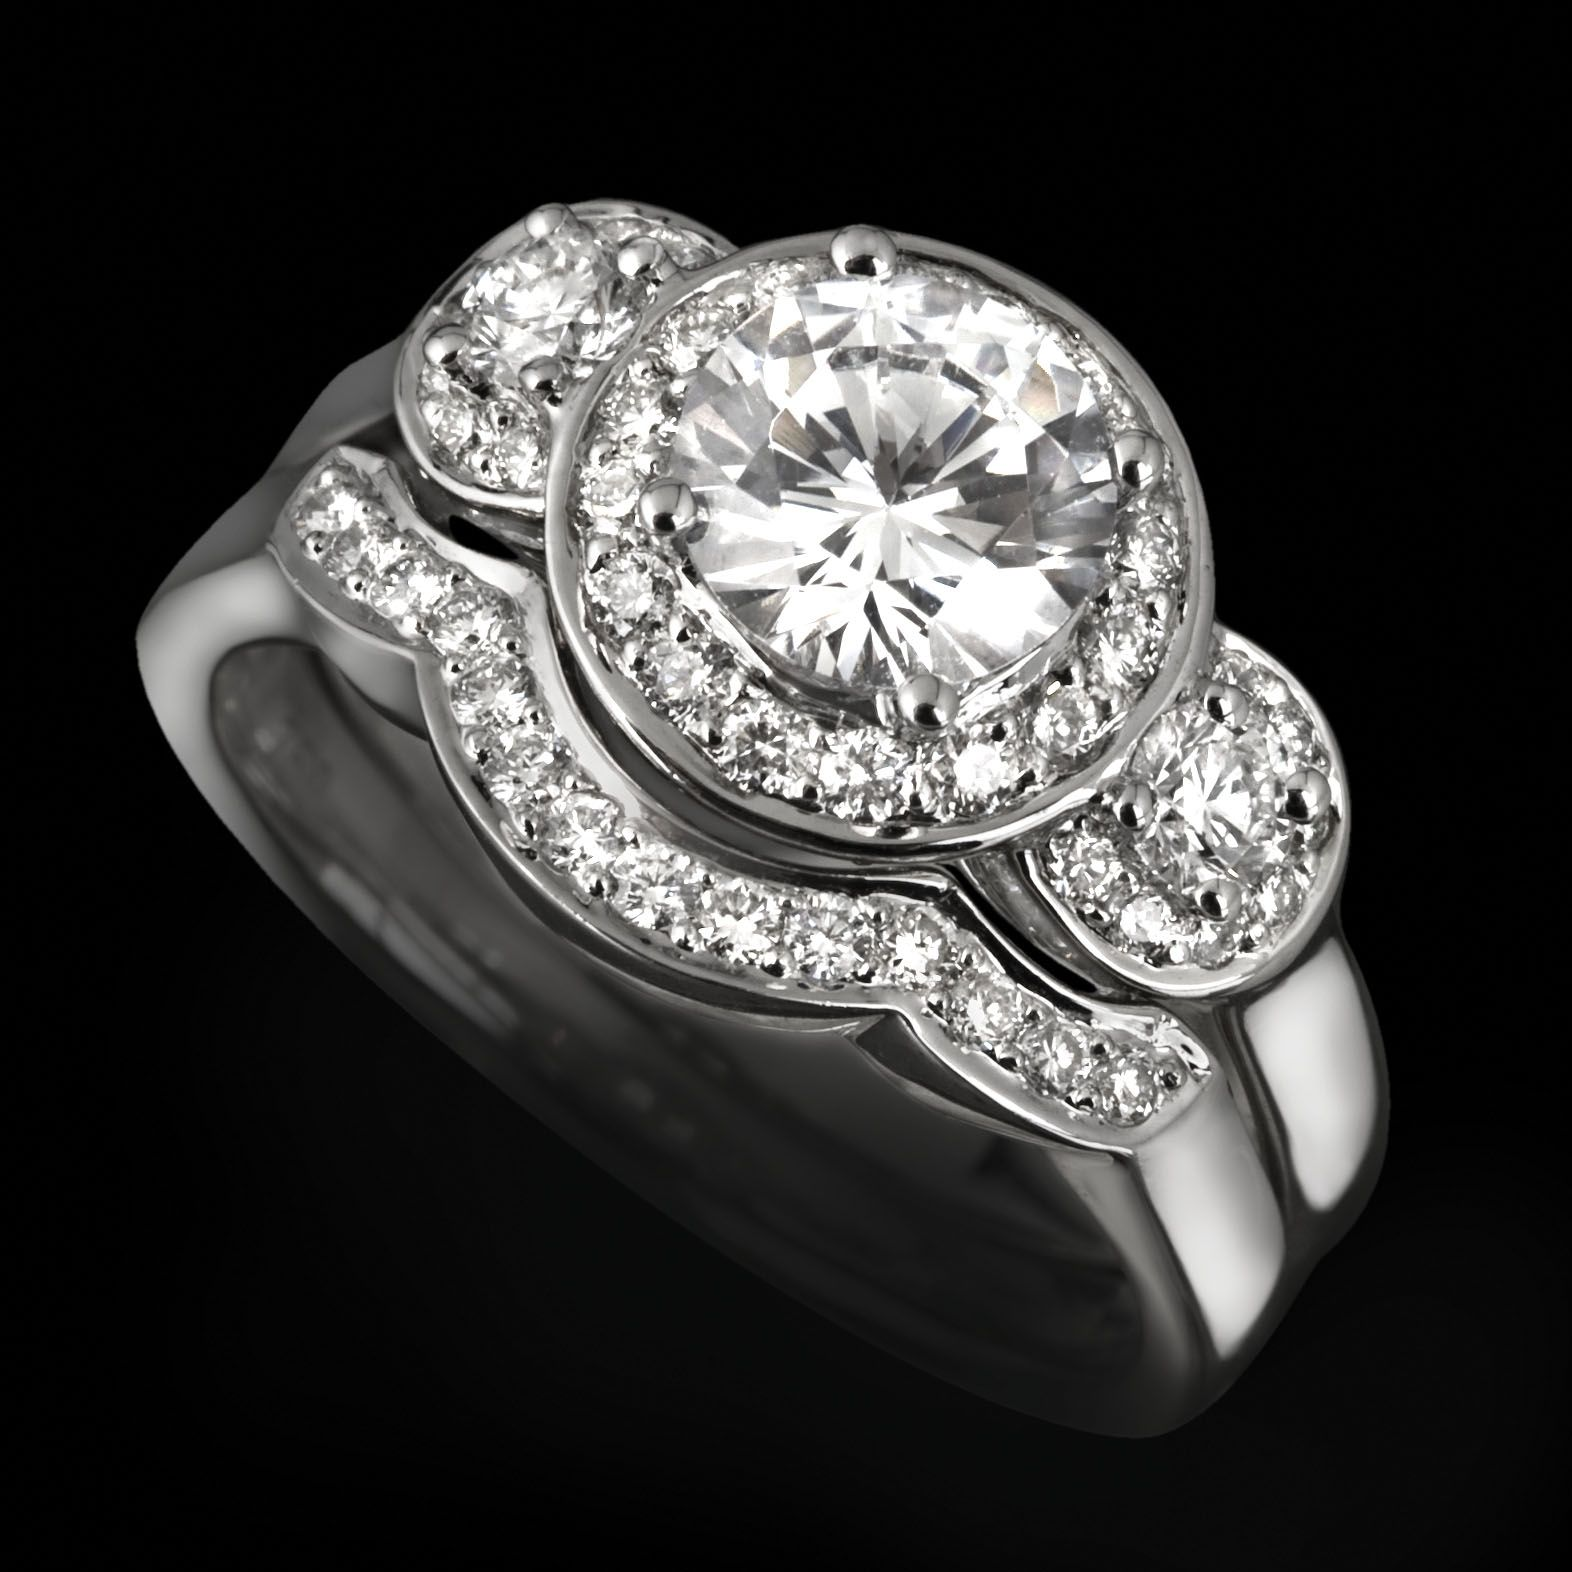 The ultimate luxury trilogy ring. 3 Stunning diamonds, in